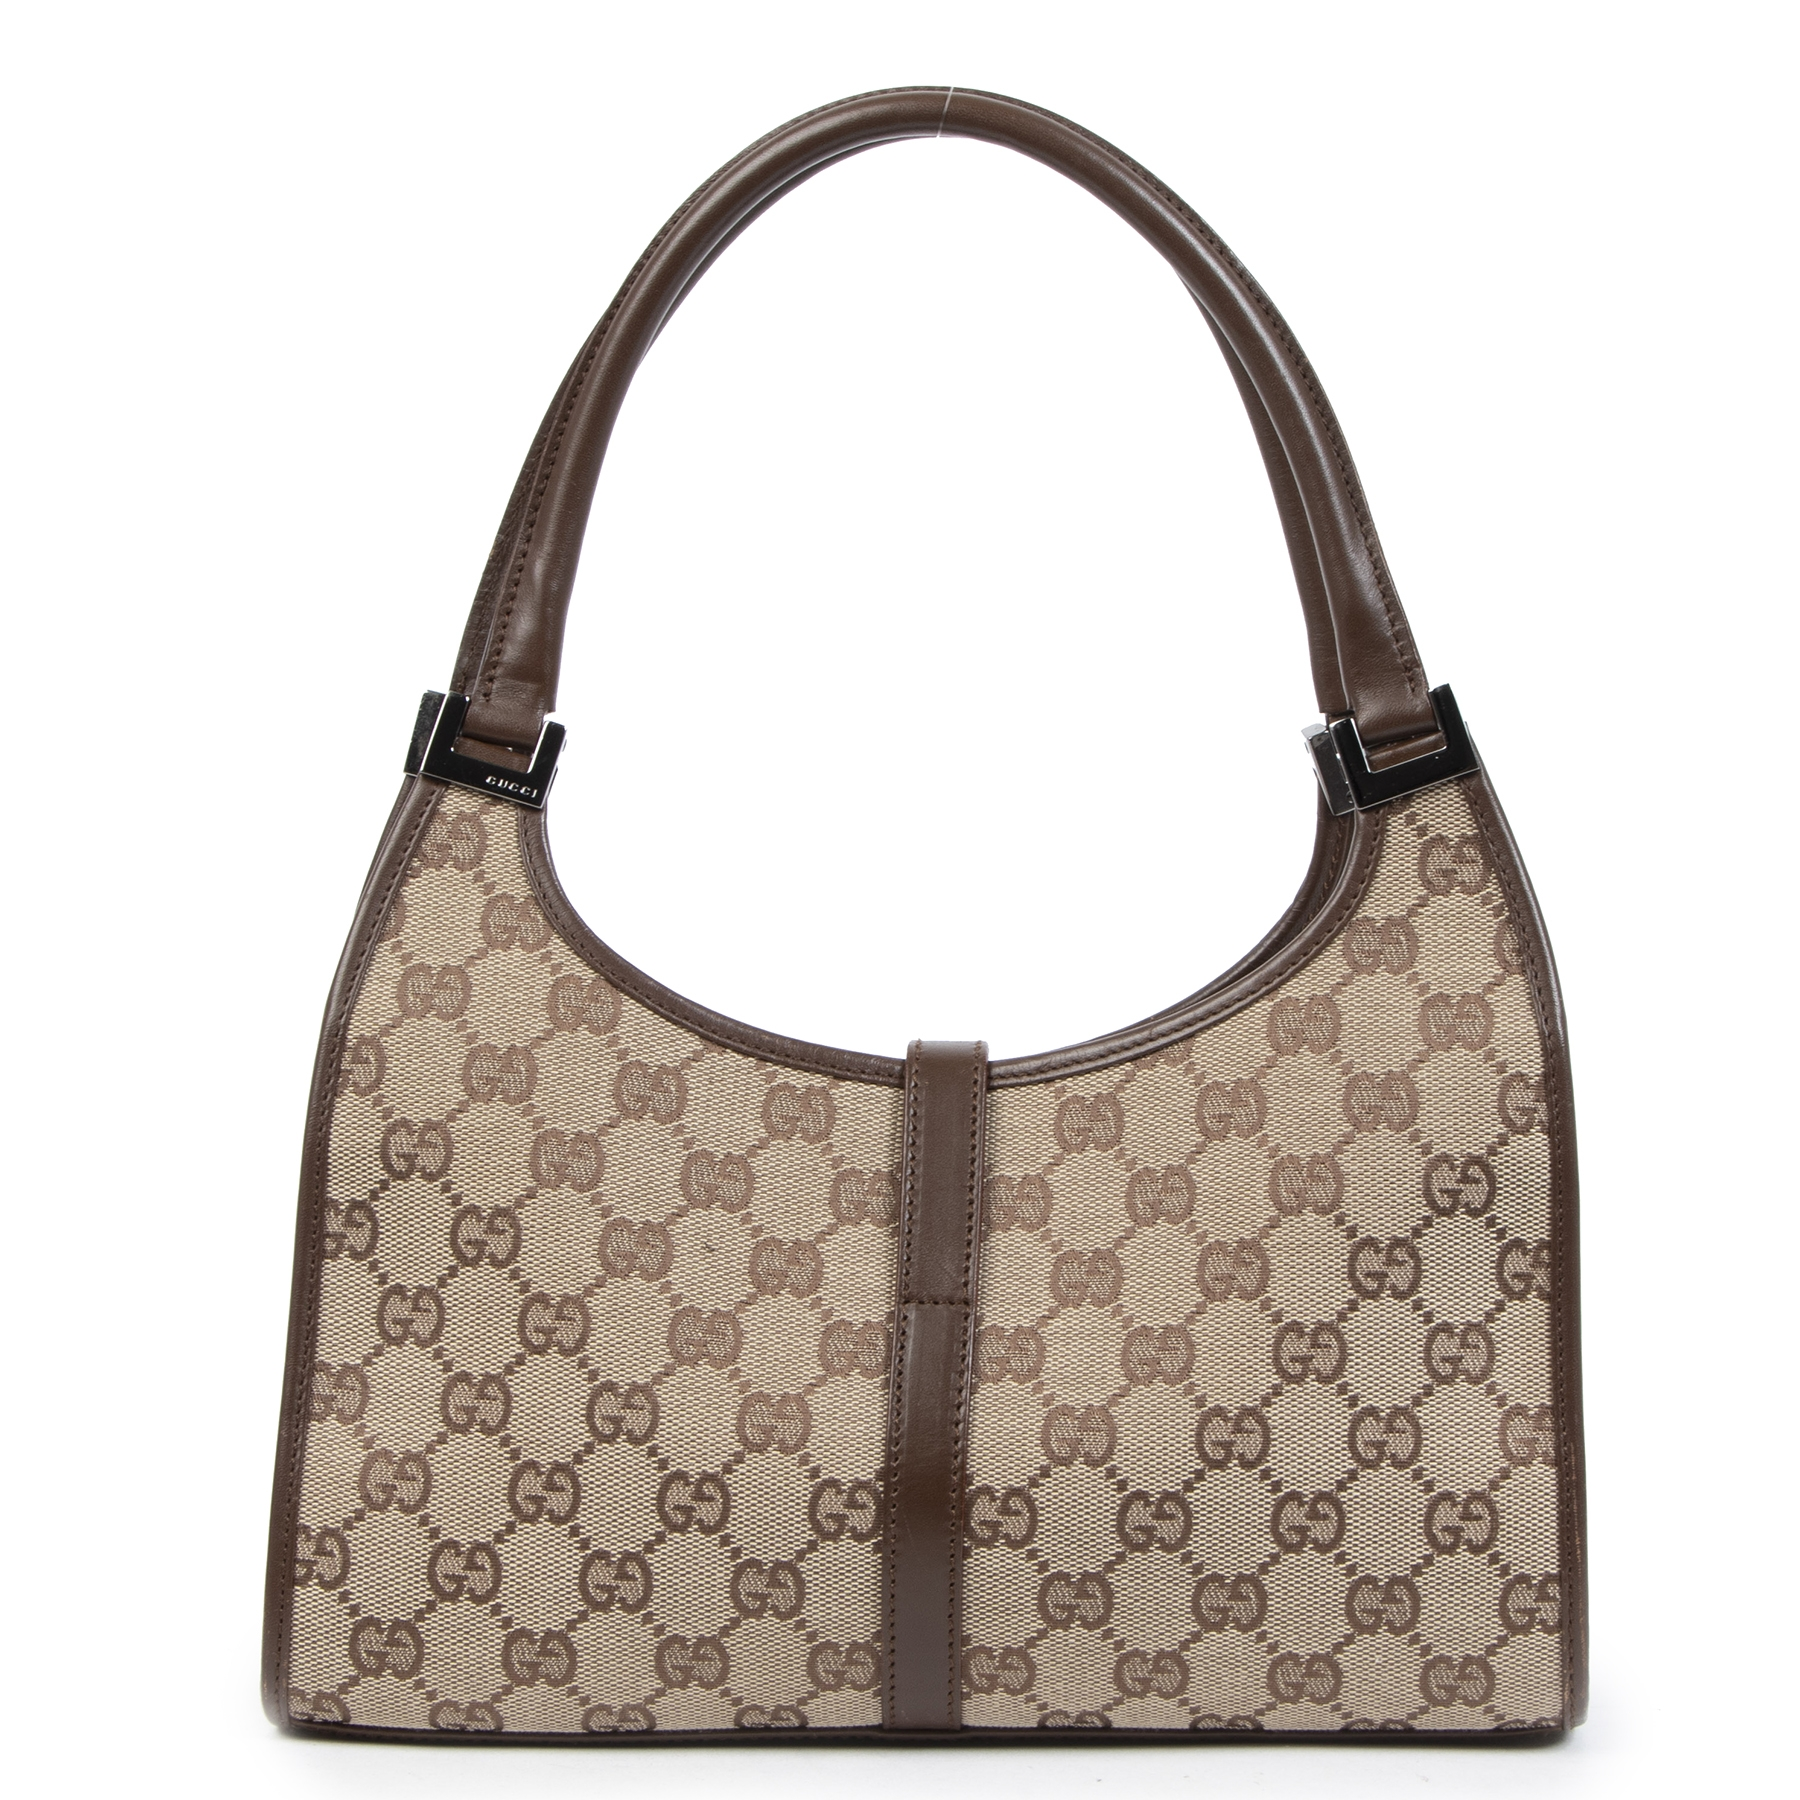 Are you looking for a 100% authentic Gucci Brown Monogram Shoulder Bag?